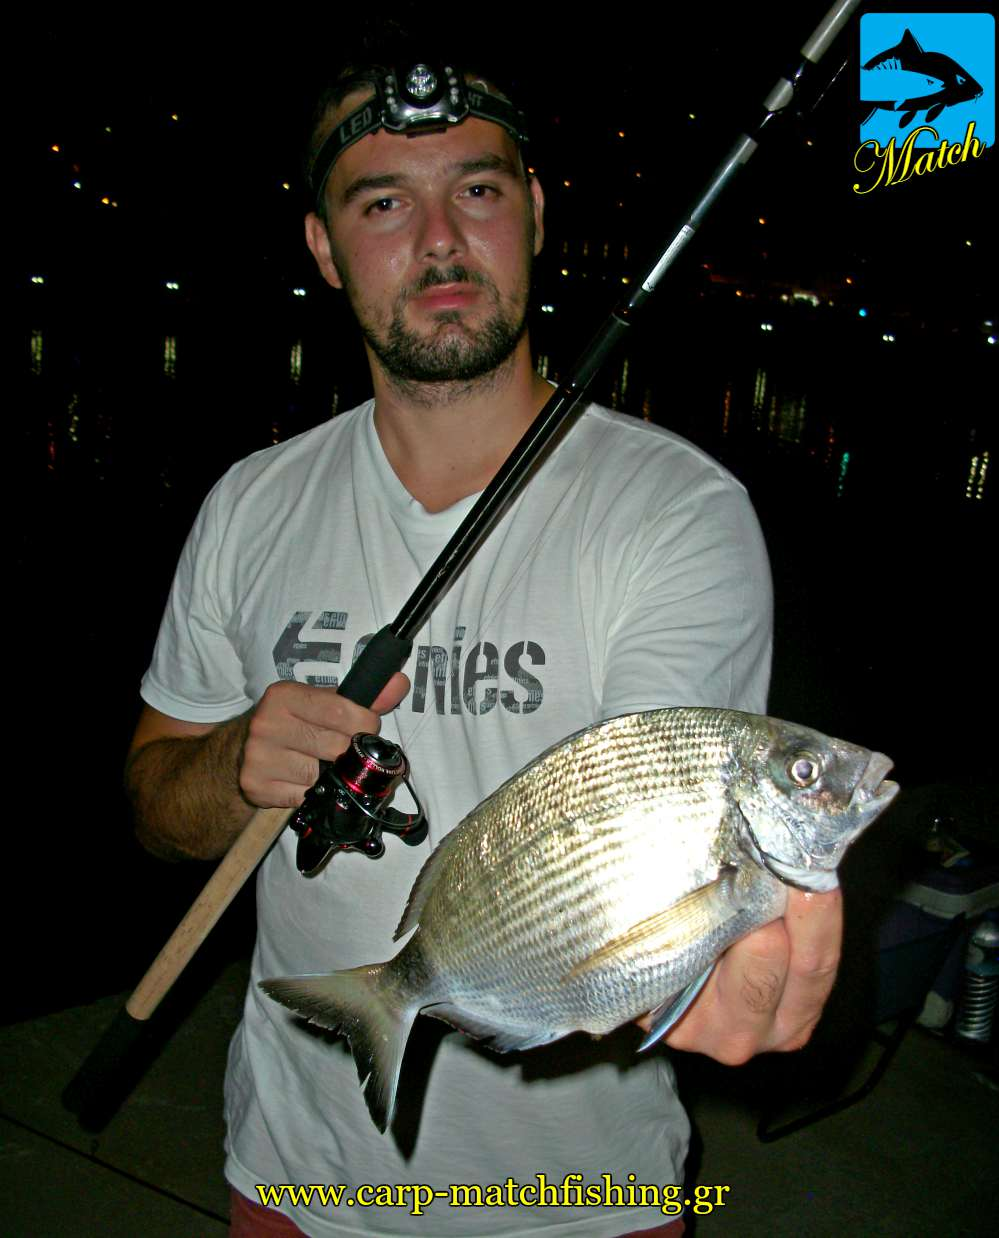 sargos match rod pap psarema carpmatchfishing